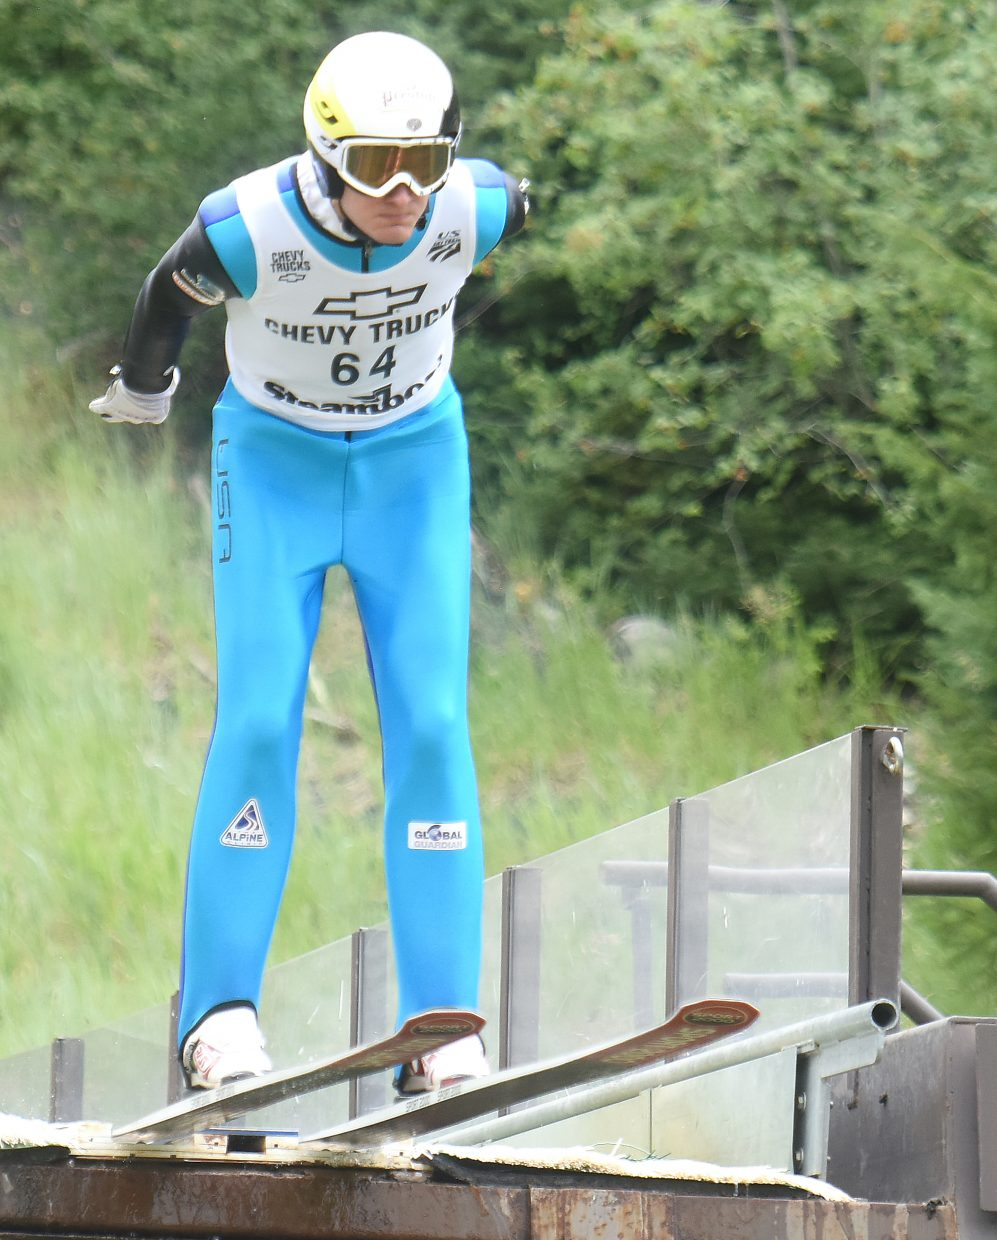 Adam Loomis hits the end of the HS75 ski jump in Steamboat Springs.